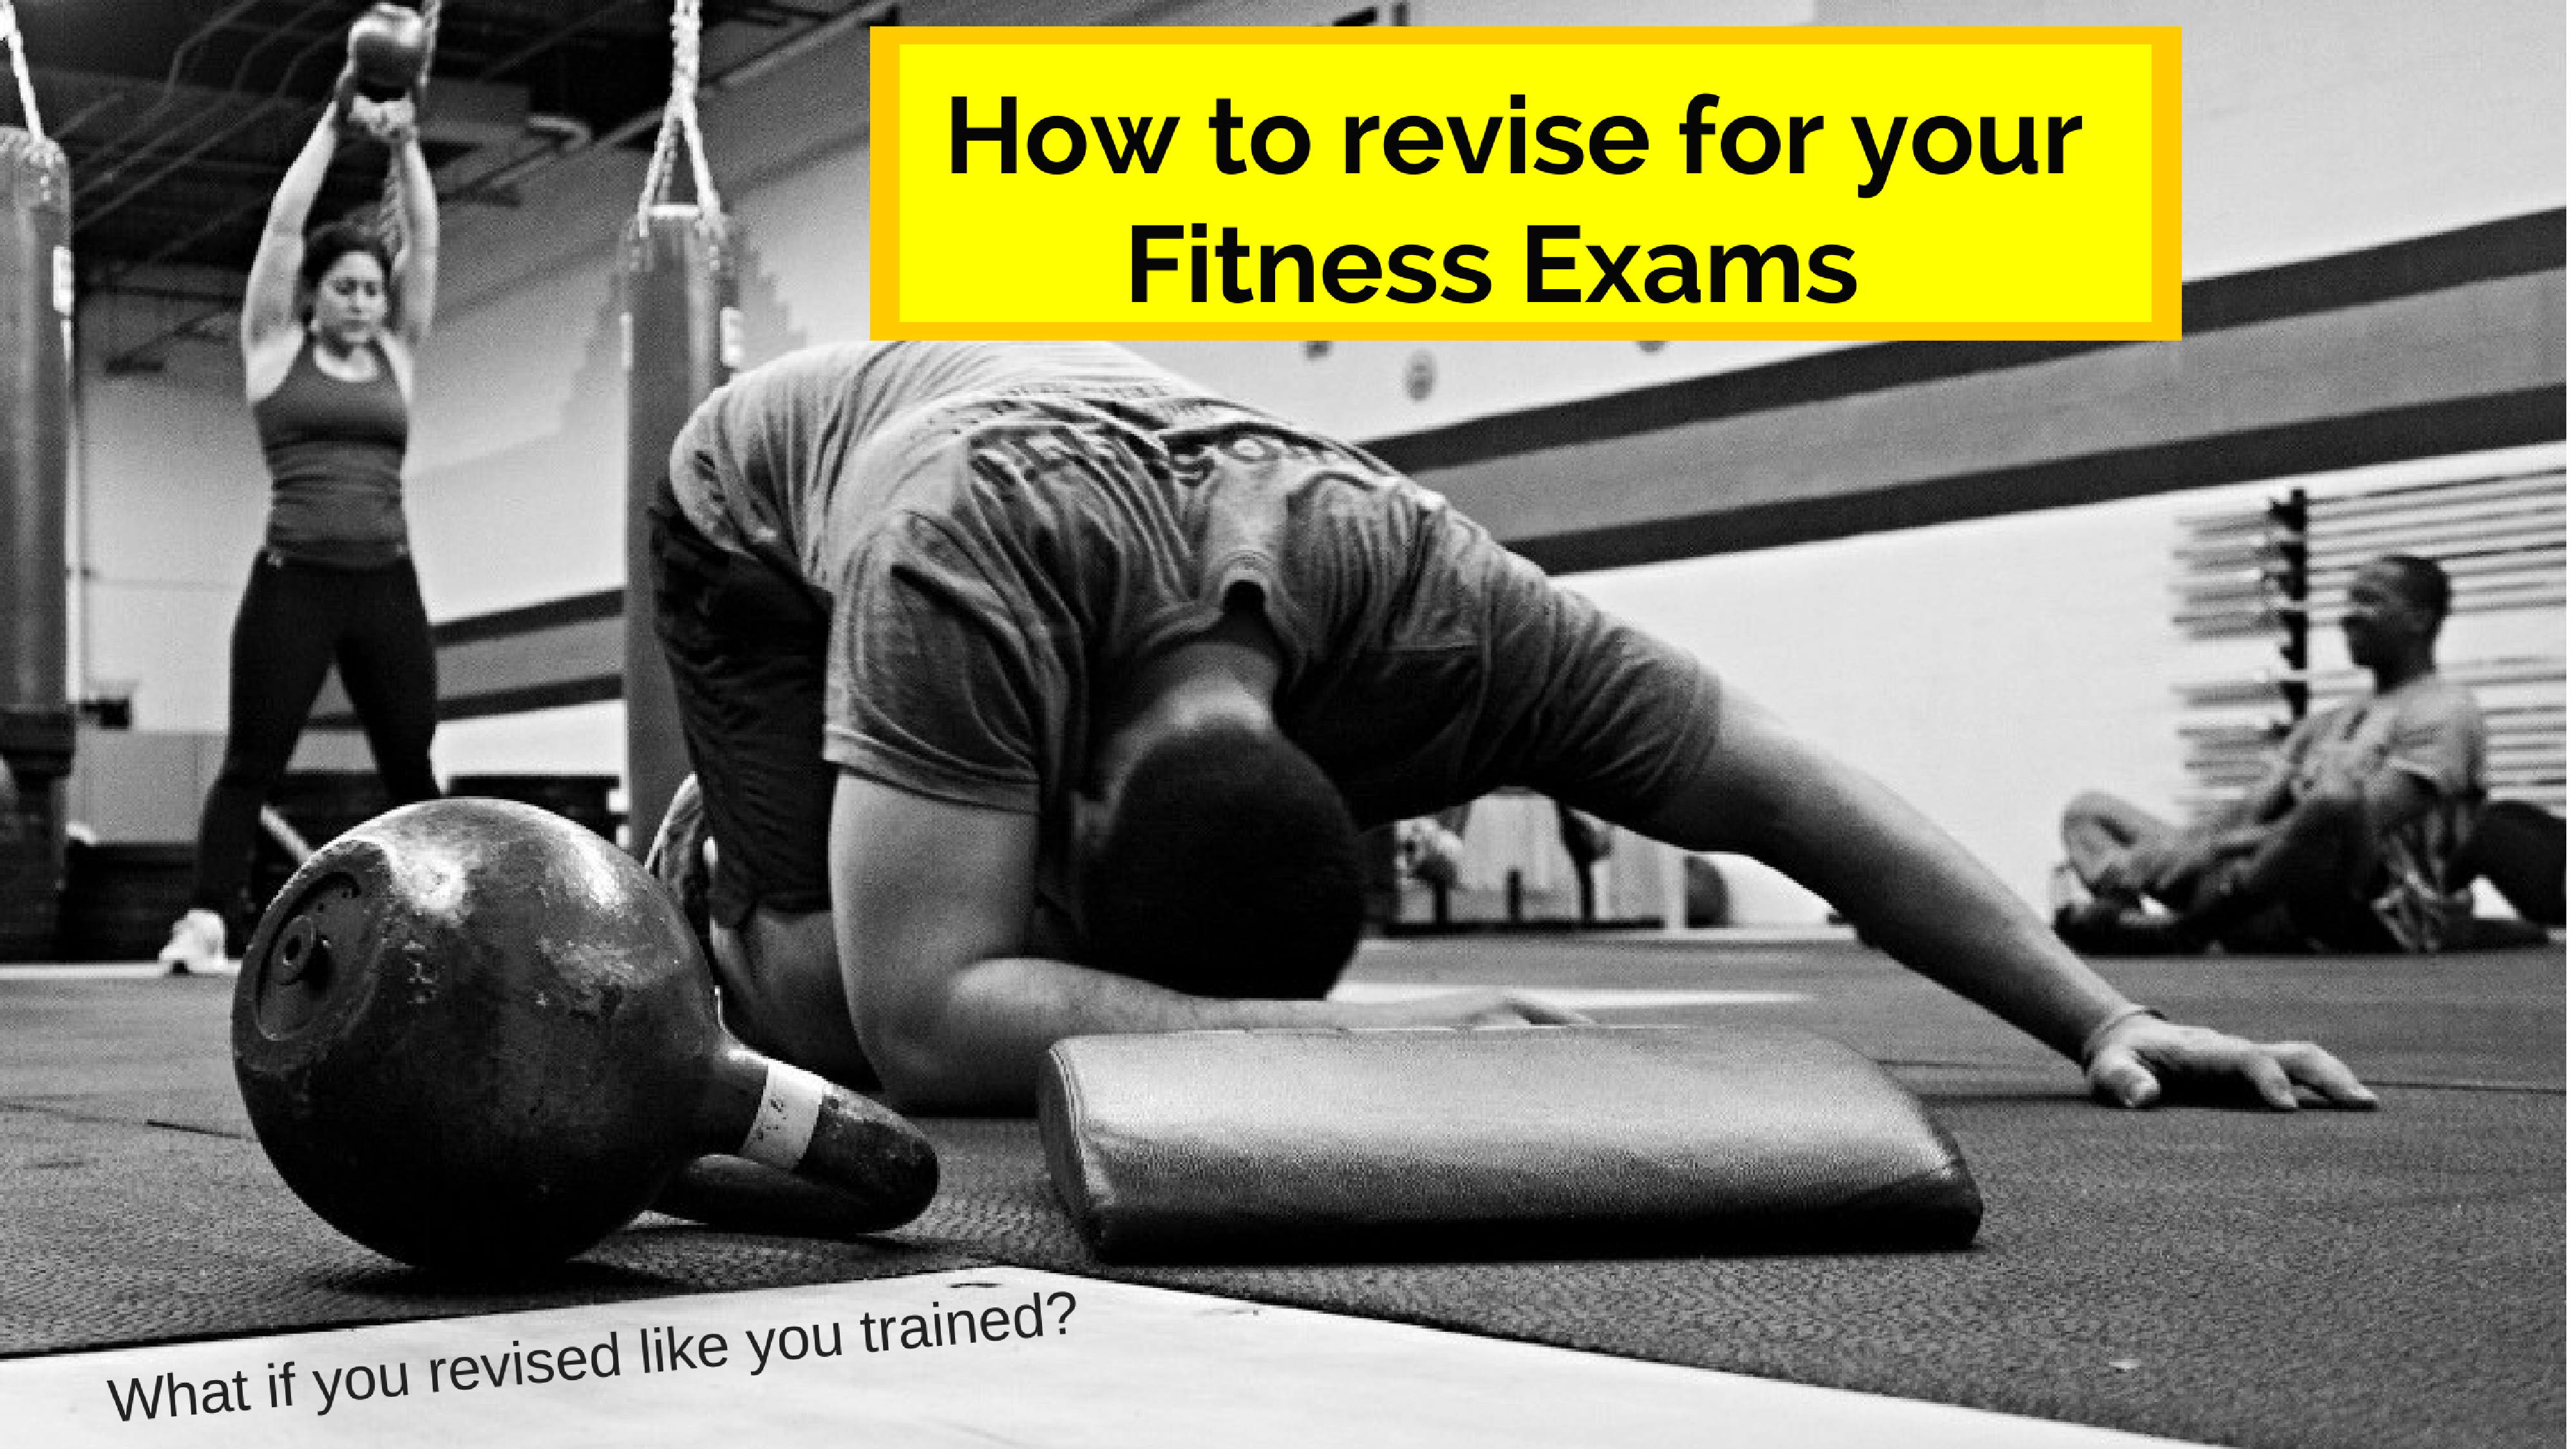 How to revise for your fitness exams